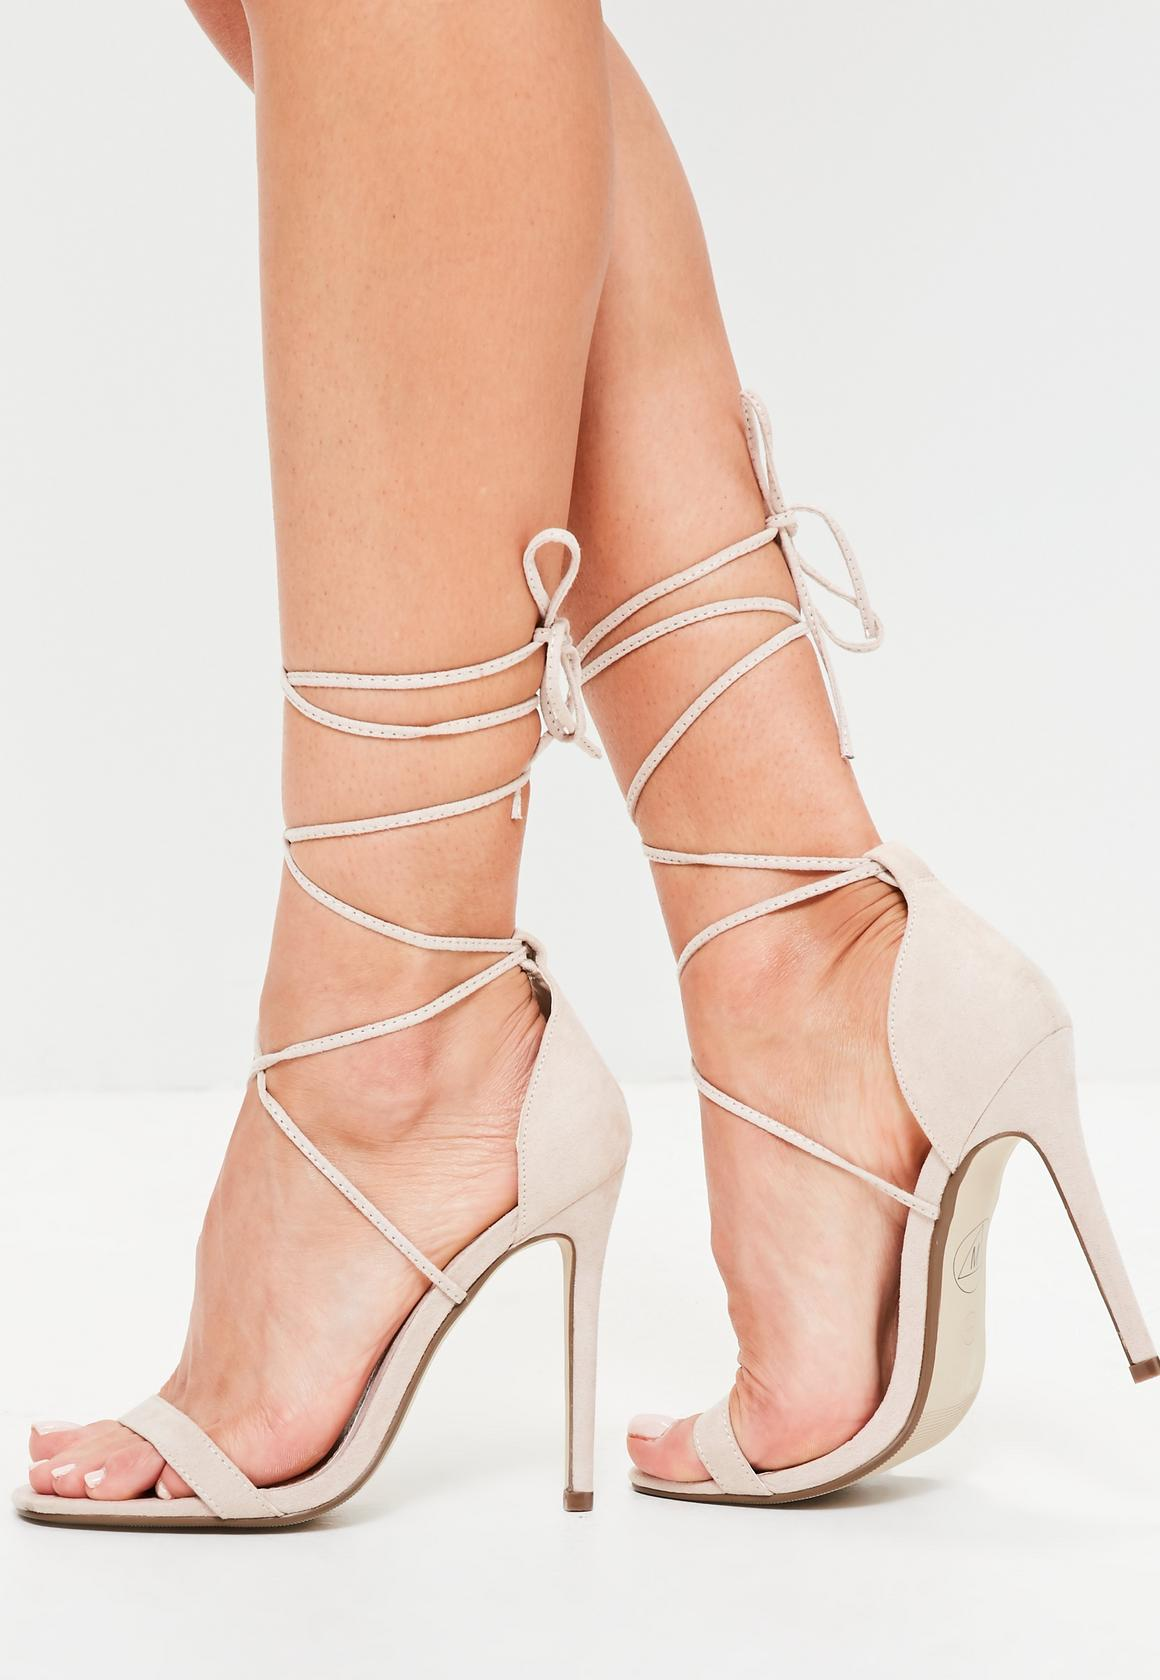 Nude Strappy High Heels tIjLuBdx